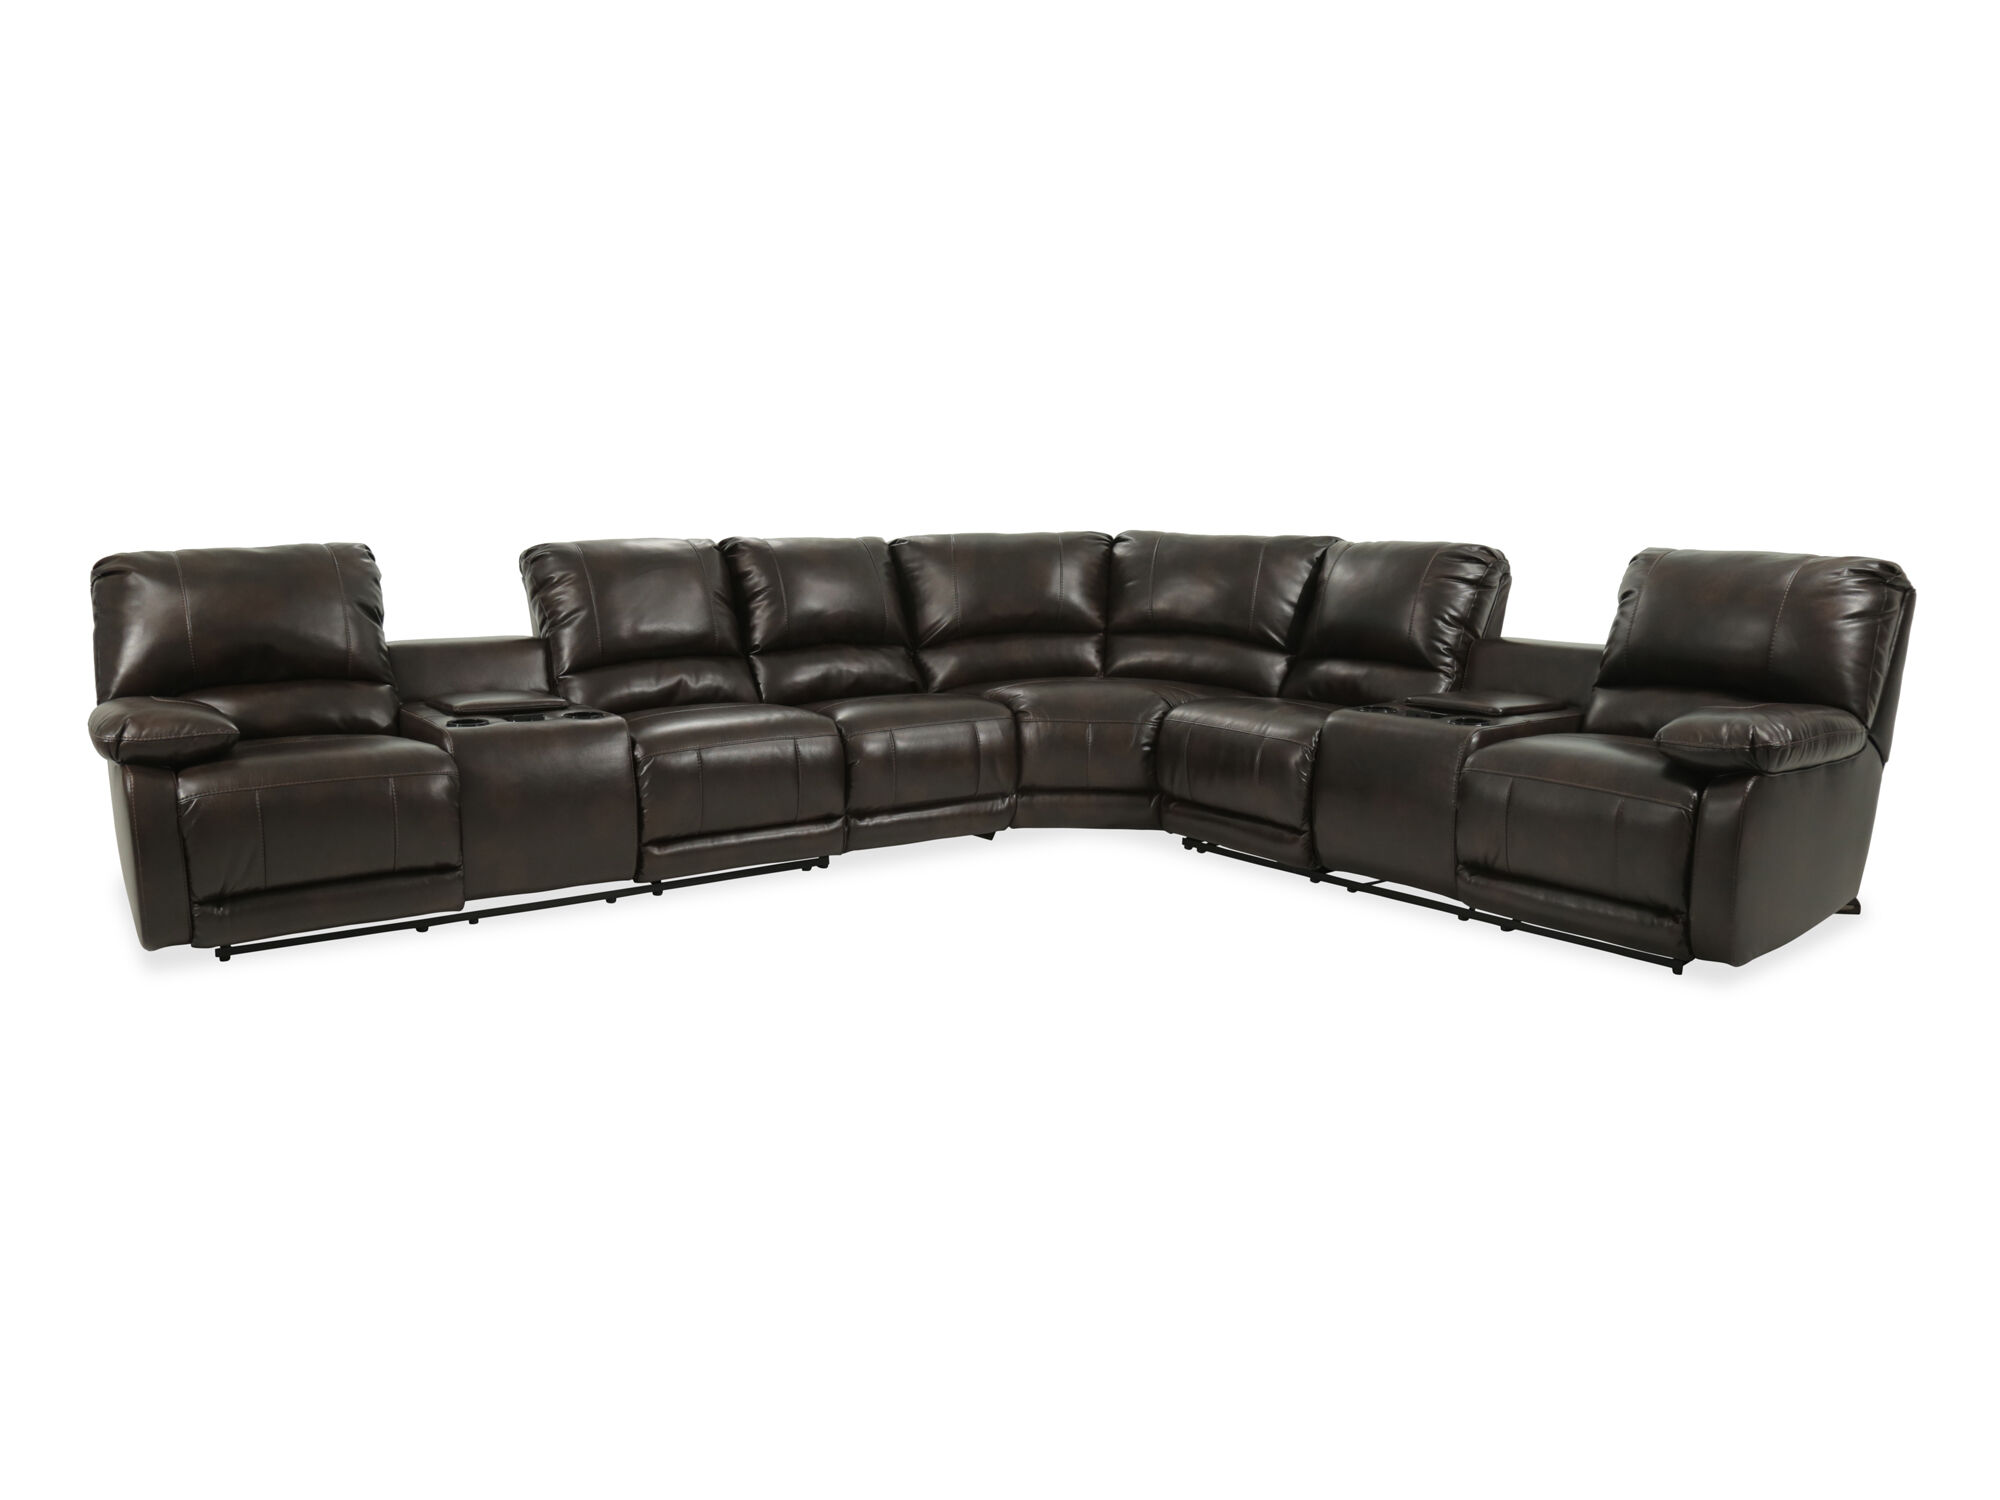 4 piece recliner sectional sofa stone forge table four microfiber in brown mathis brothers